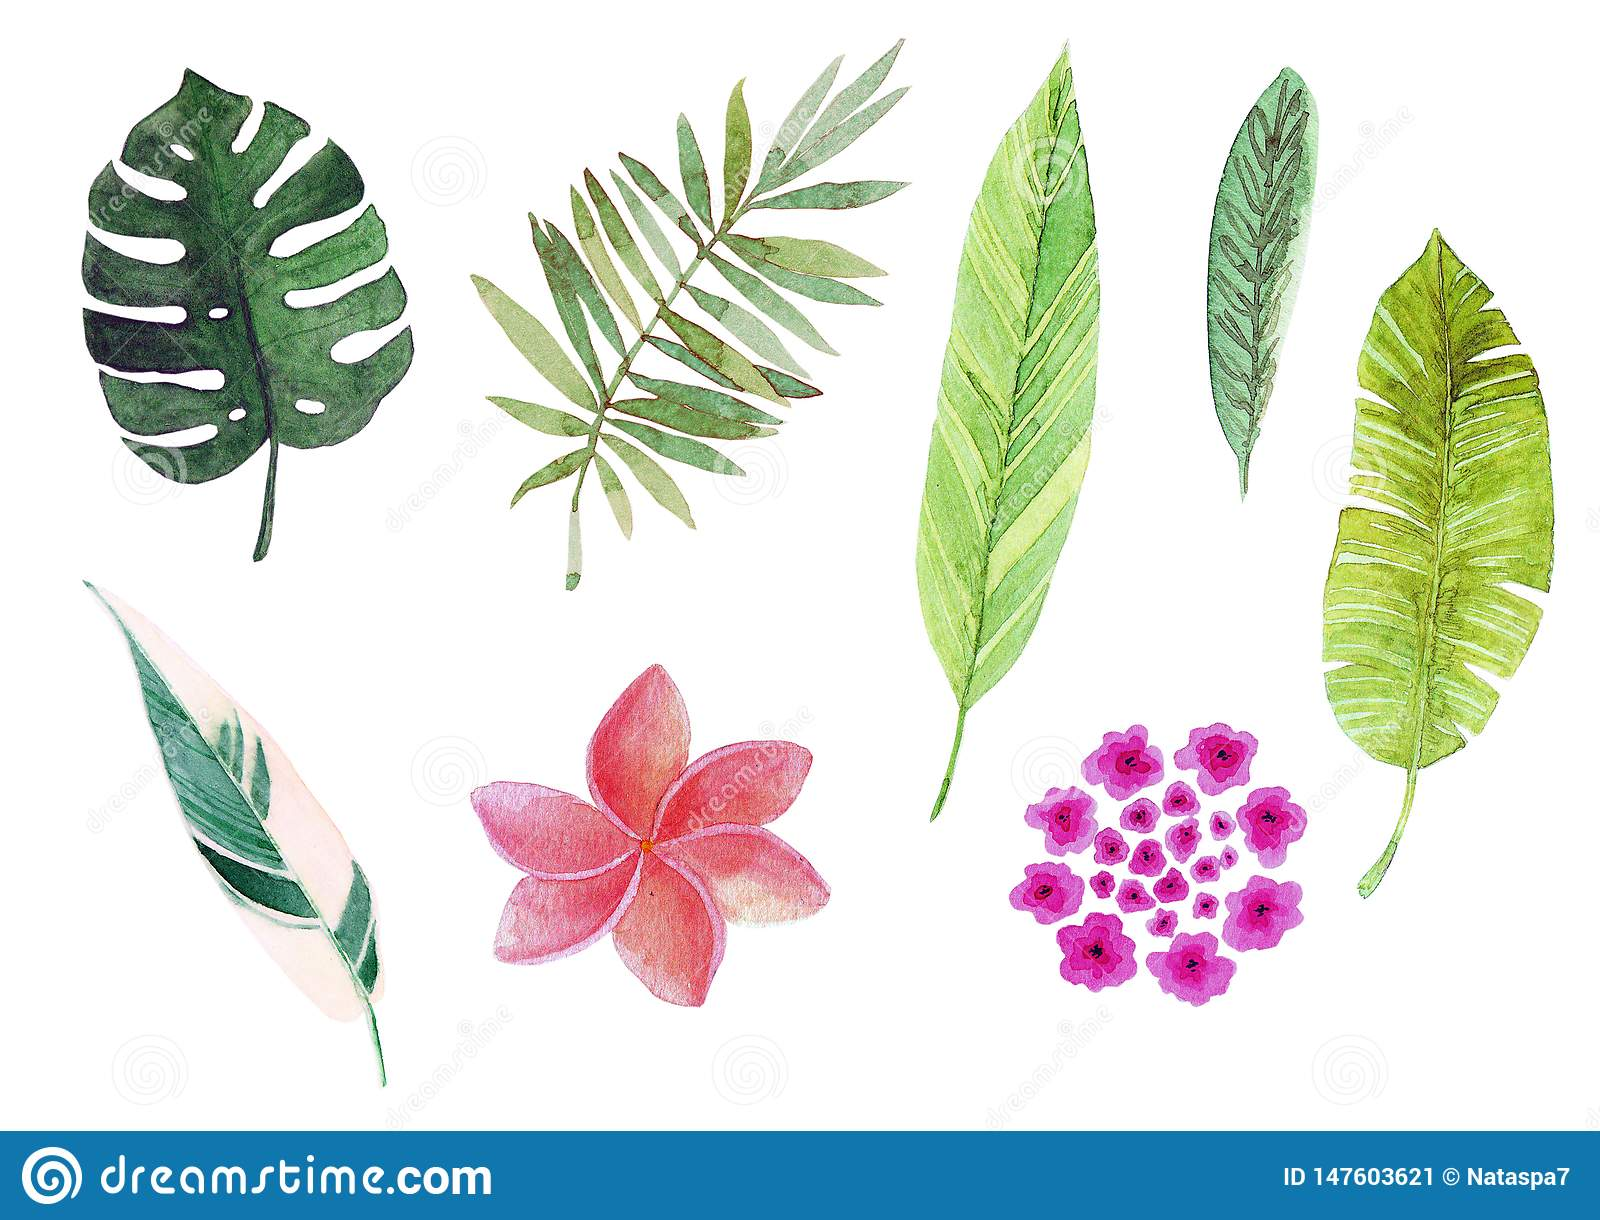 Watercolor tropical leaves and flowers.